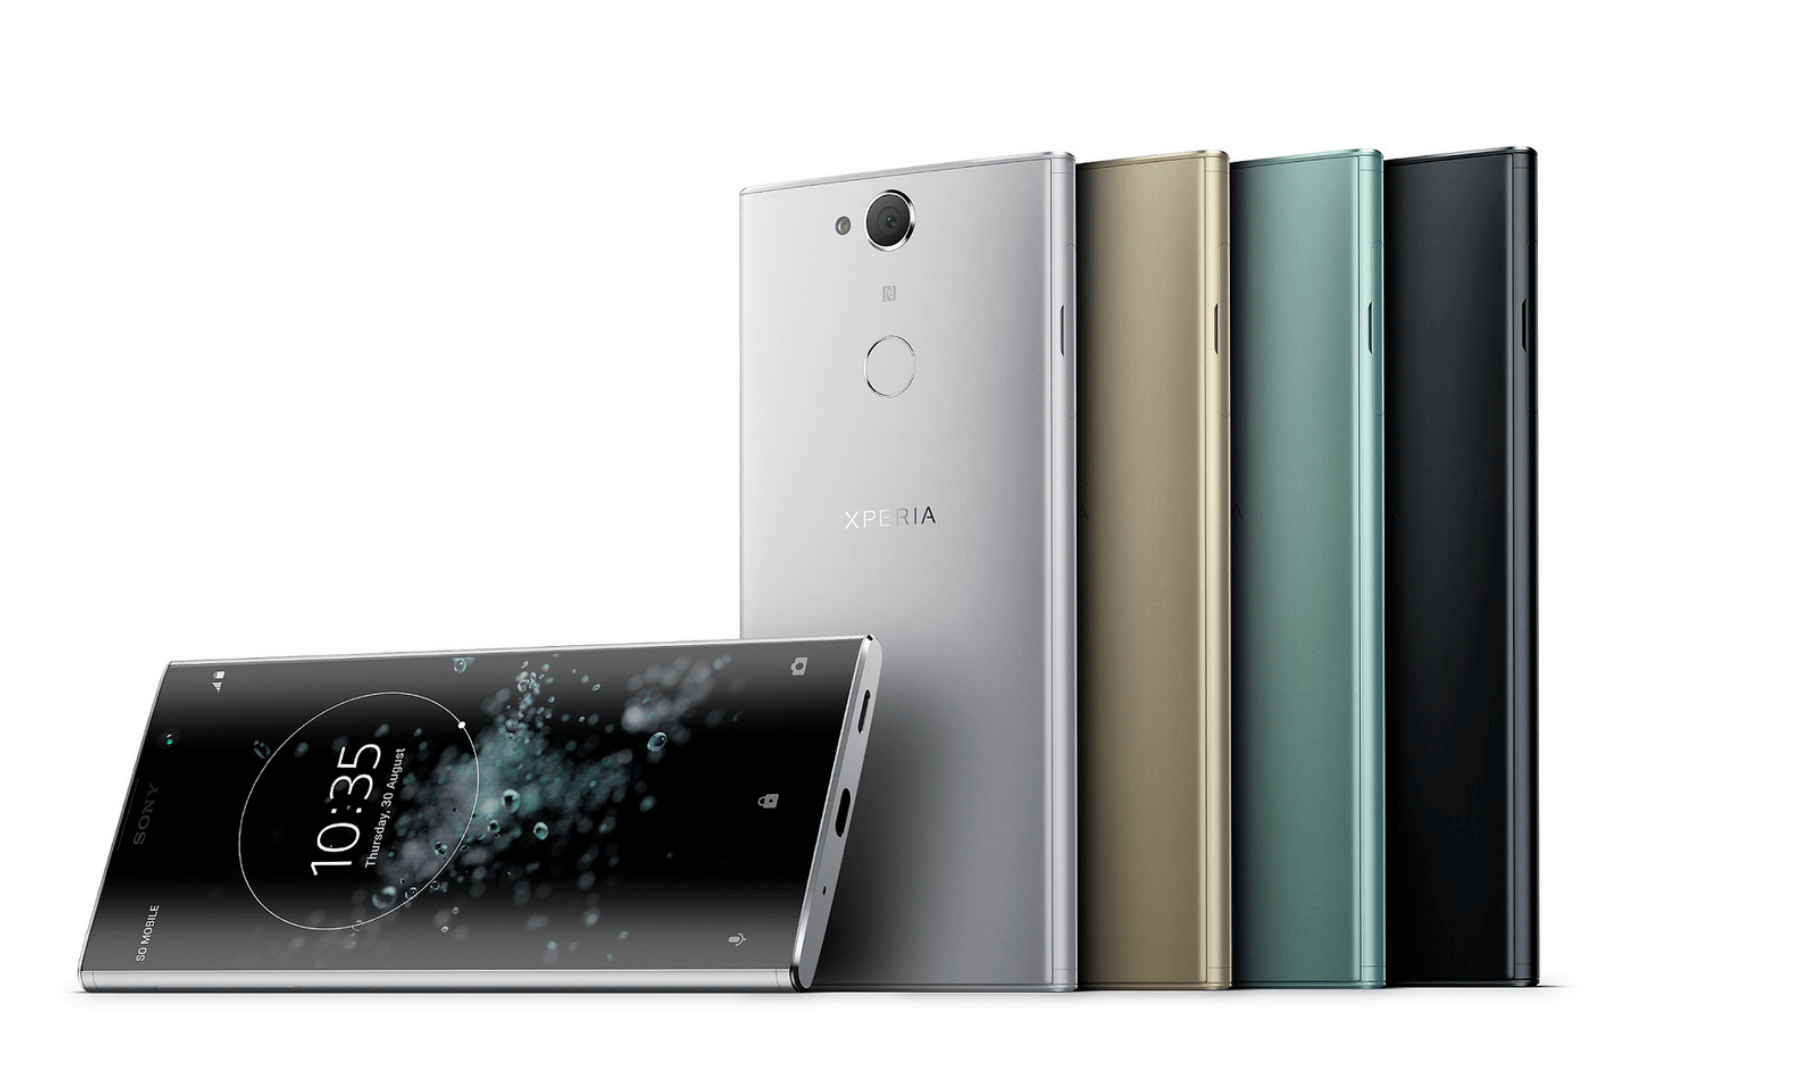 Sony's Xperia XA2 Plus is a mid-ranger that's